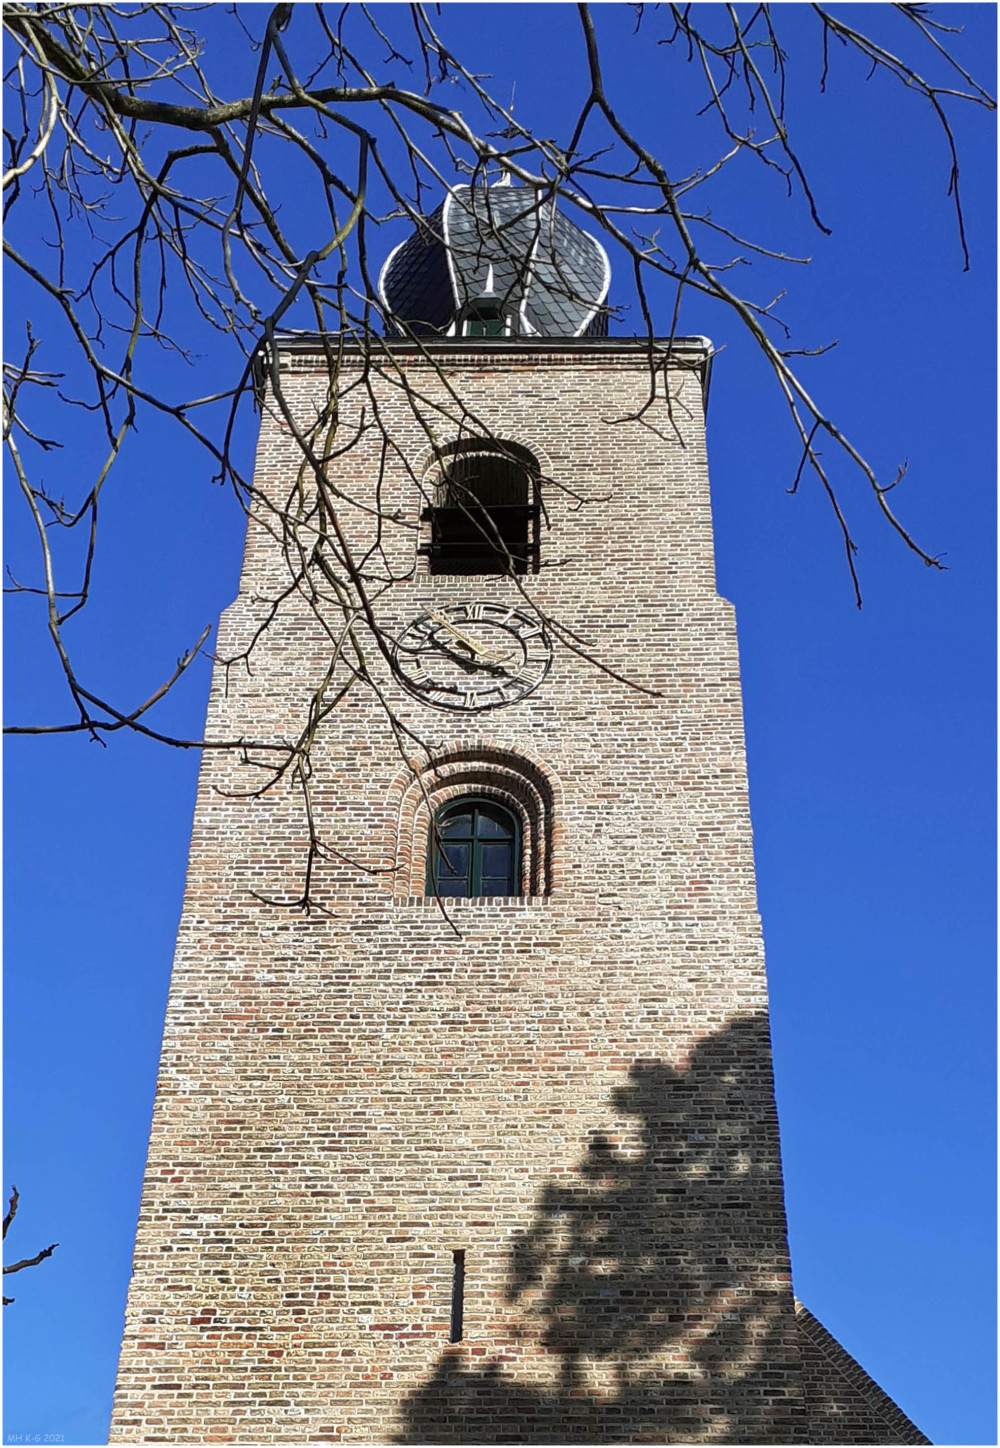 The church tower of Oostvoorne